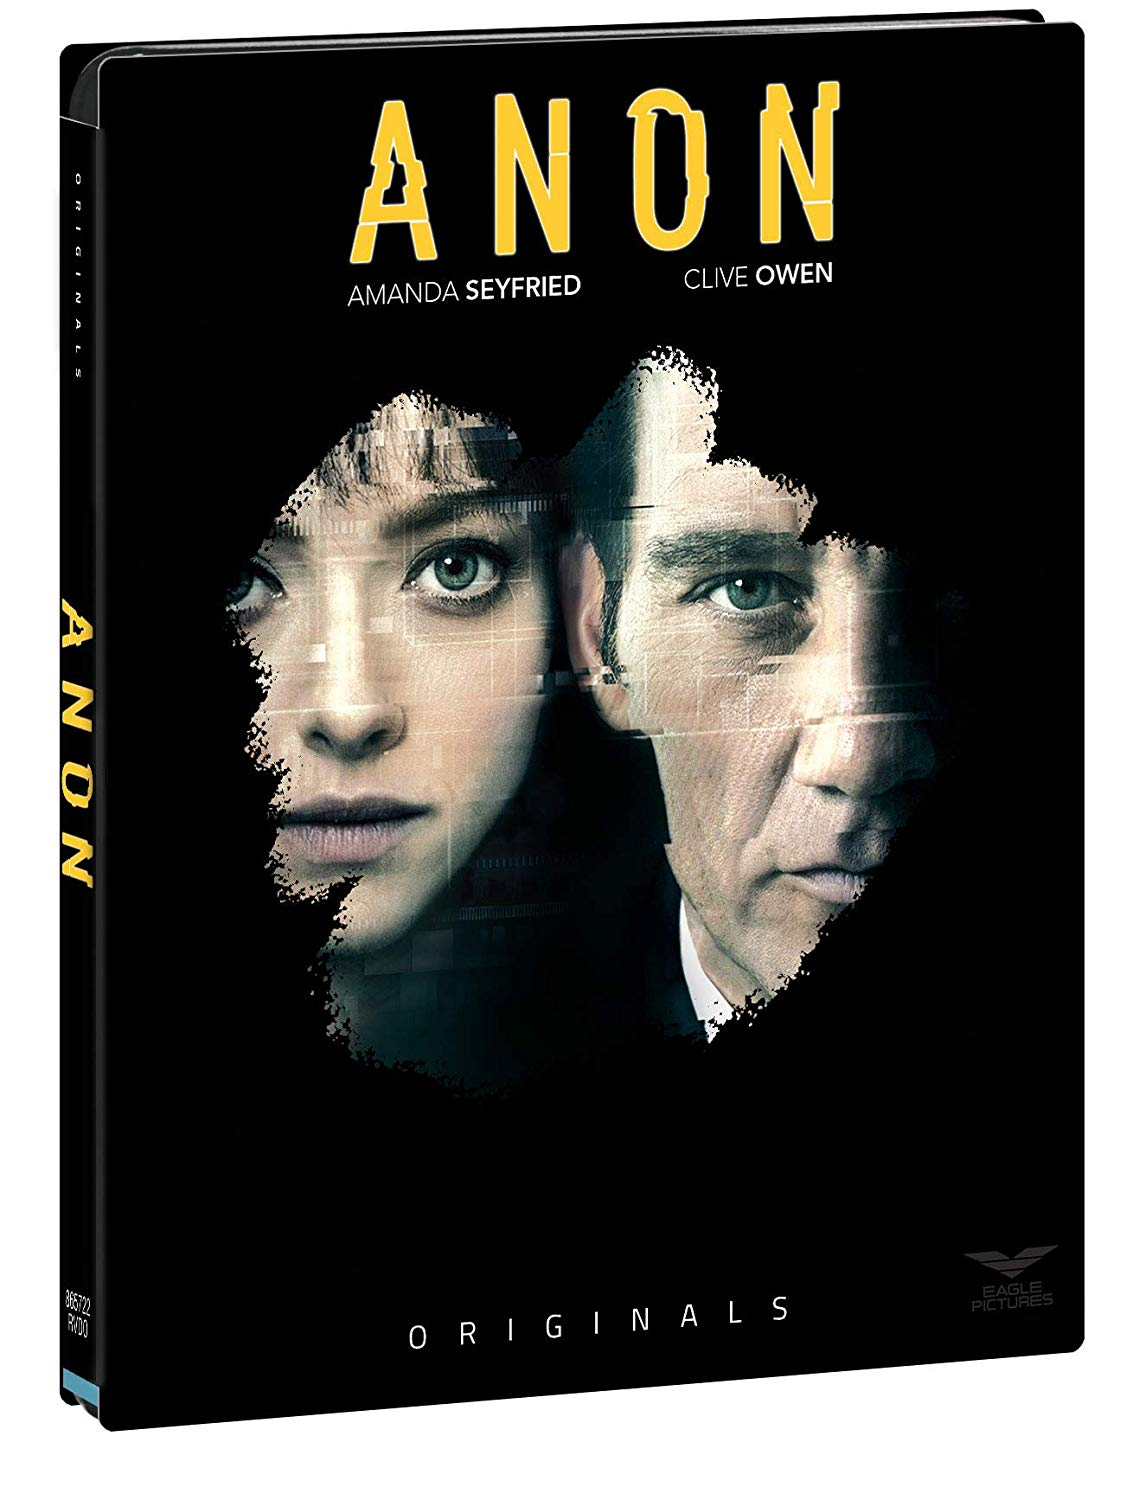 ANON (BLU-RAY+DVD)